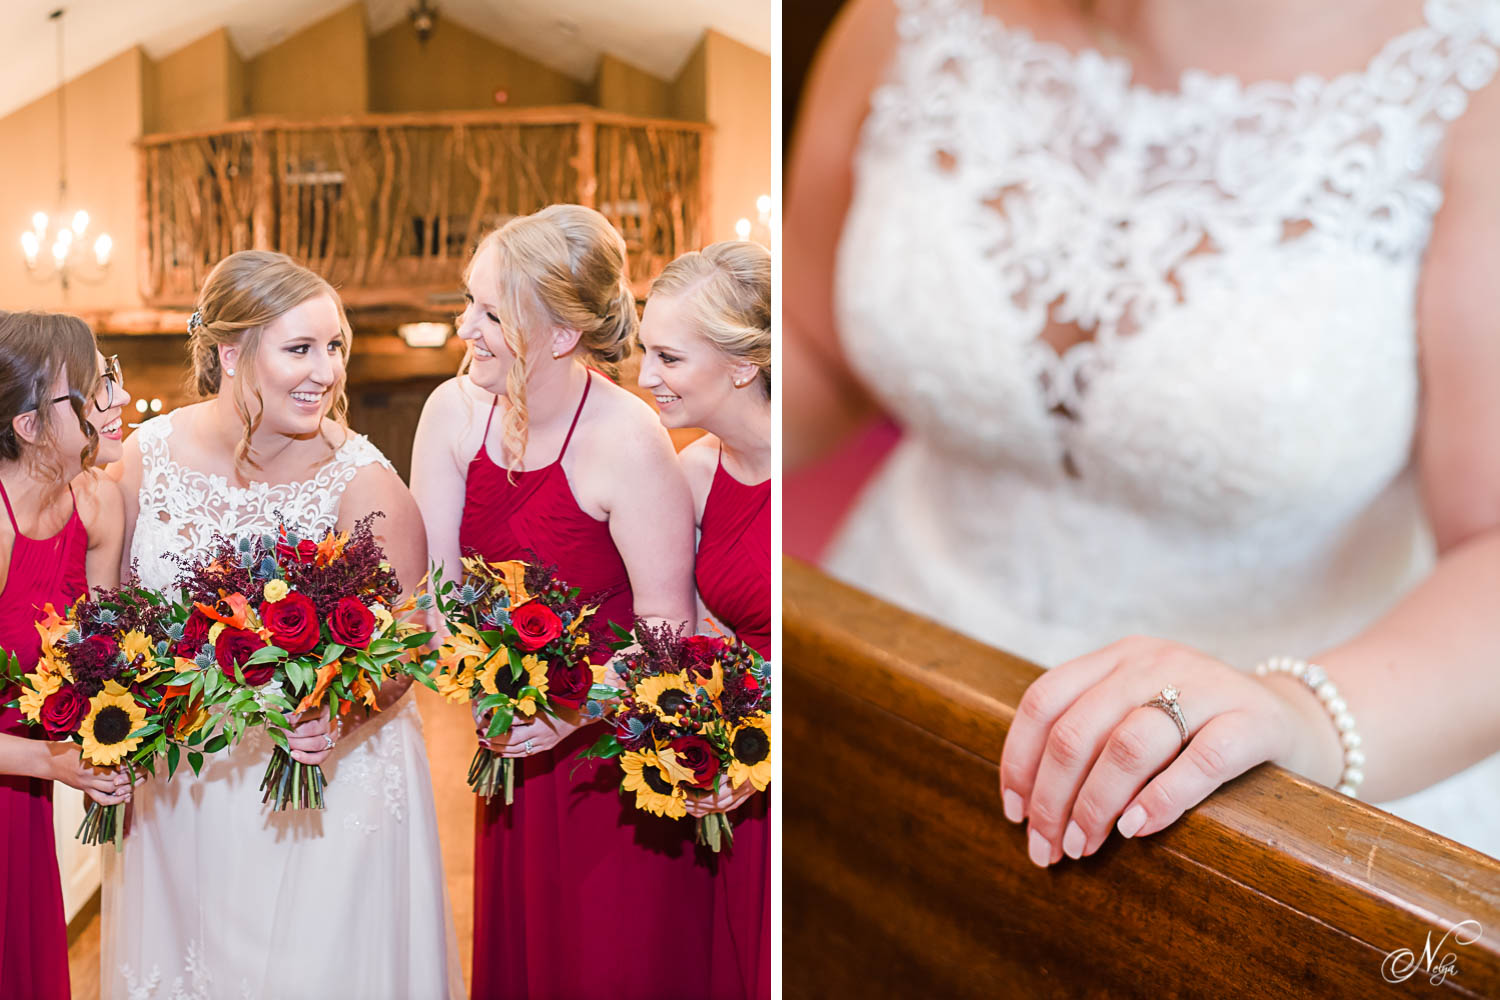 bridesmaids and bride talking in chapel at Indigo Falls. And close up of bride's hand with ring on her finger